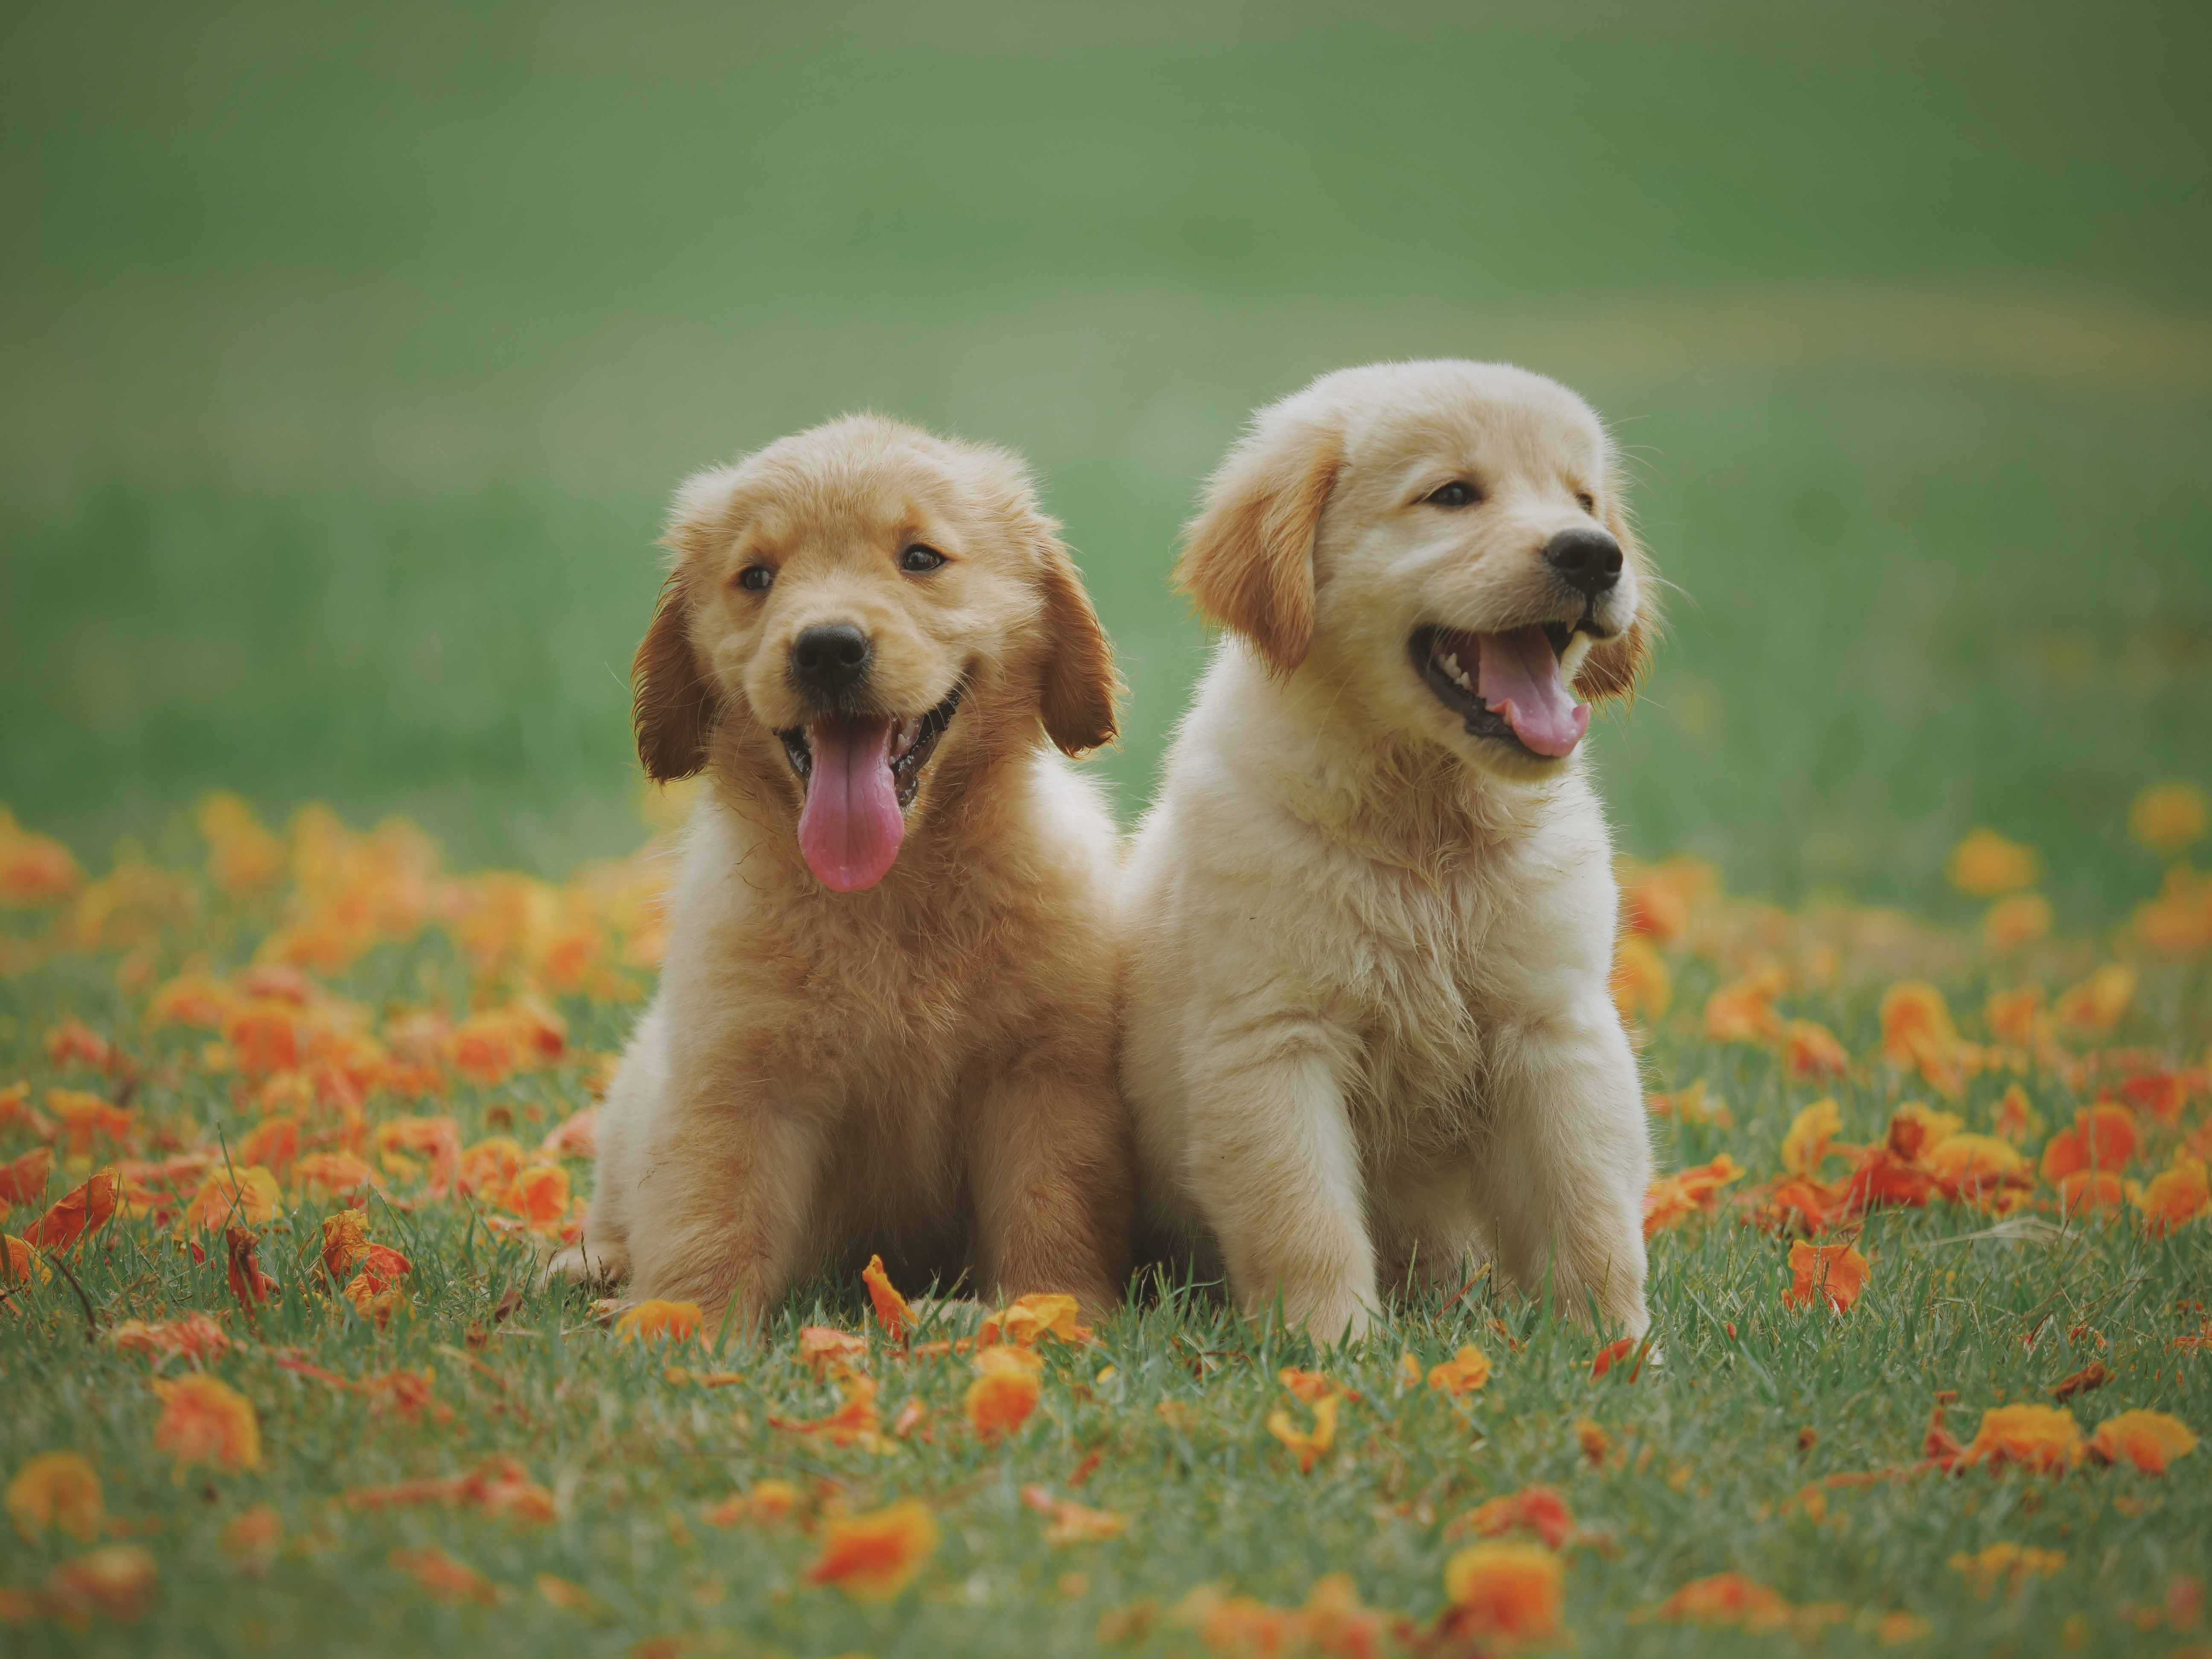 two puppies sitting in bed of flowers